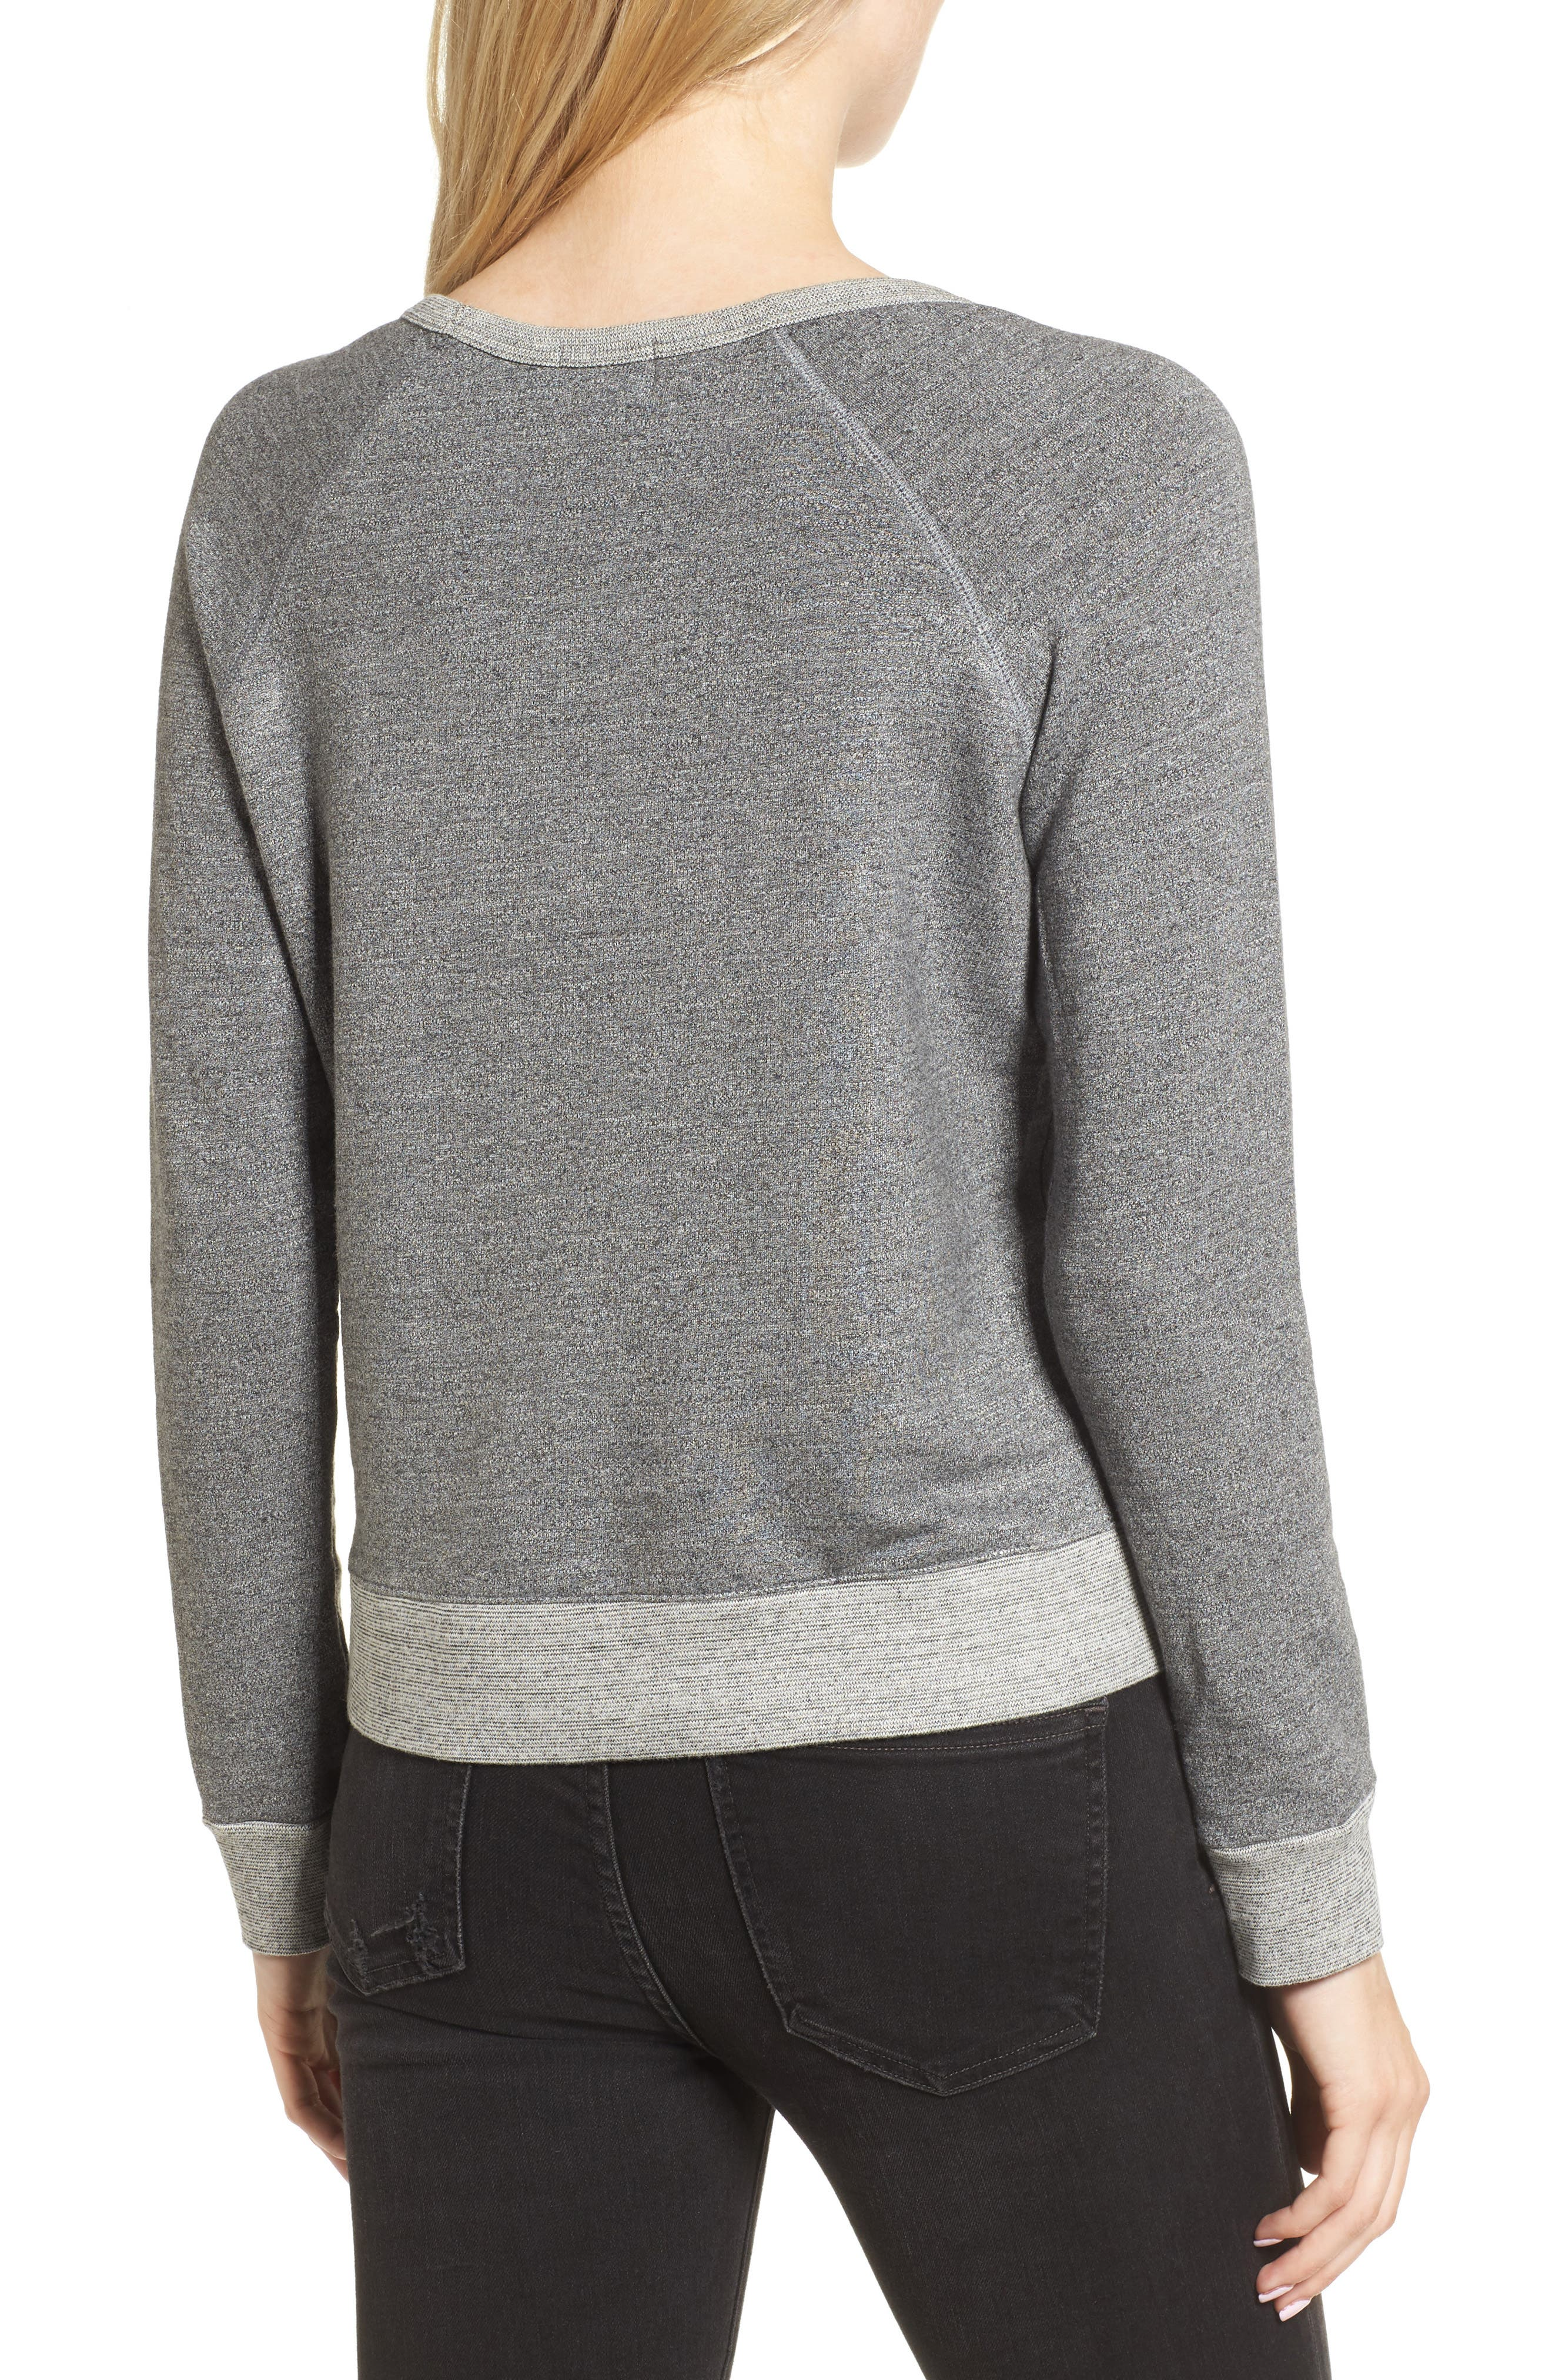 Chic Crop Sweatshirt,                             Alternate thumbnail 2, color,                             Heather Grey